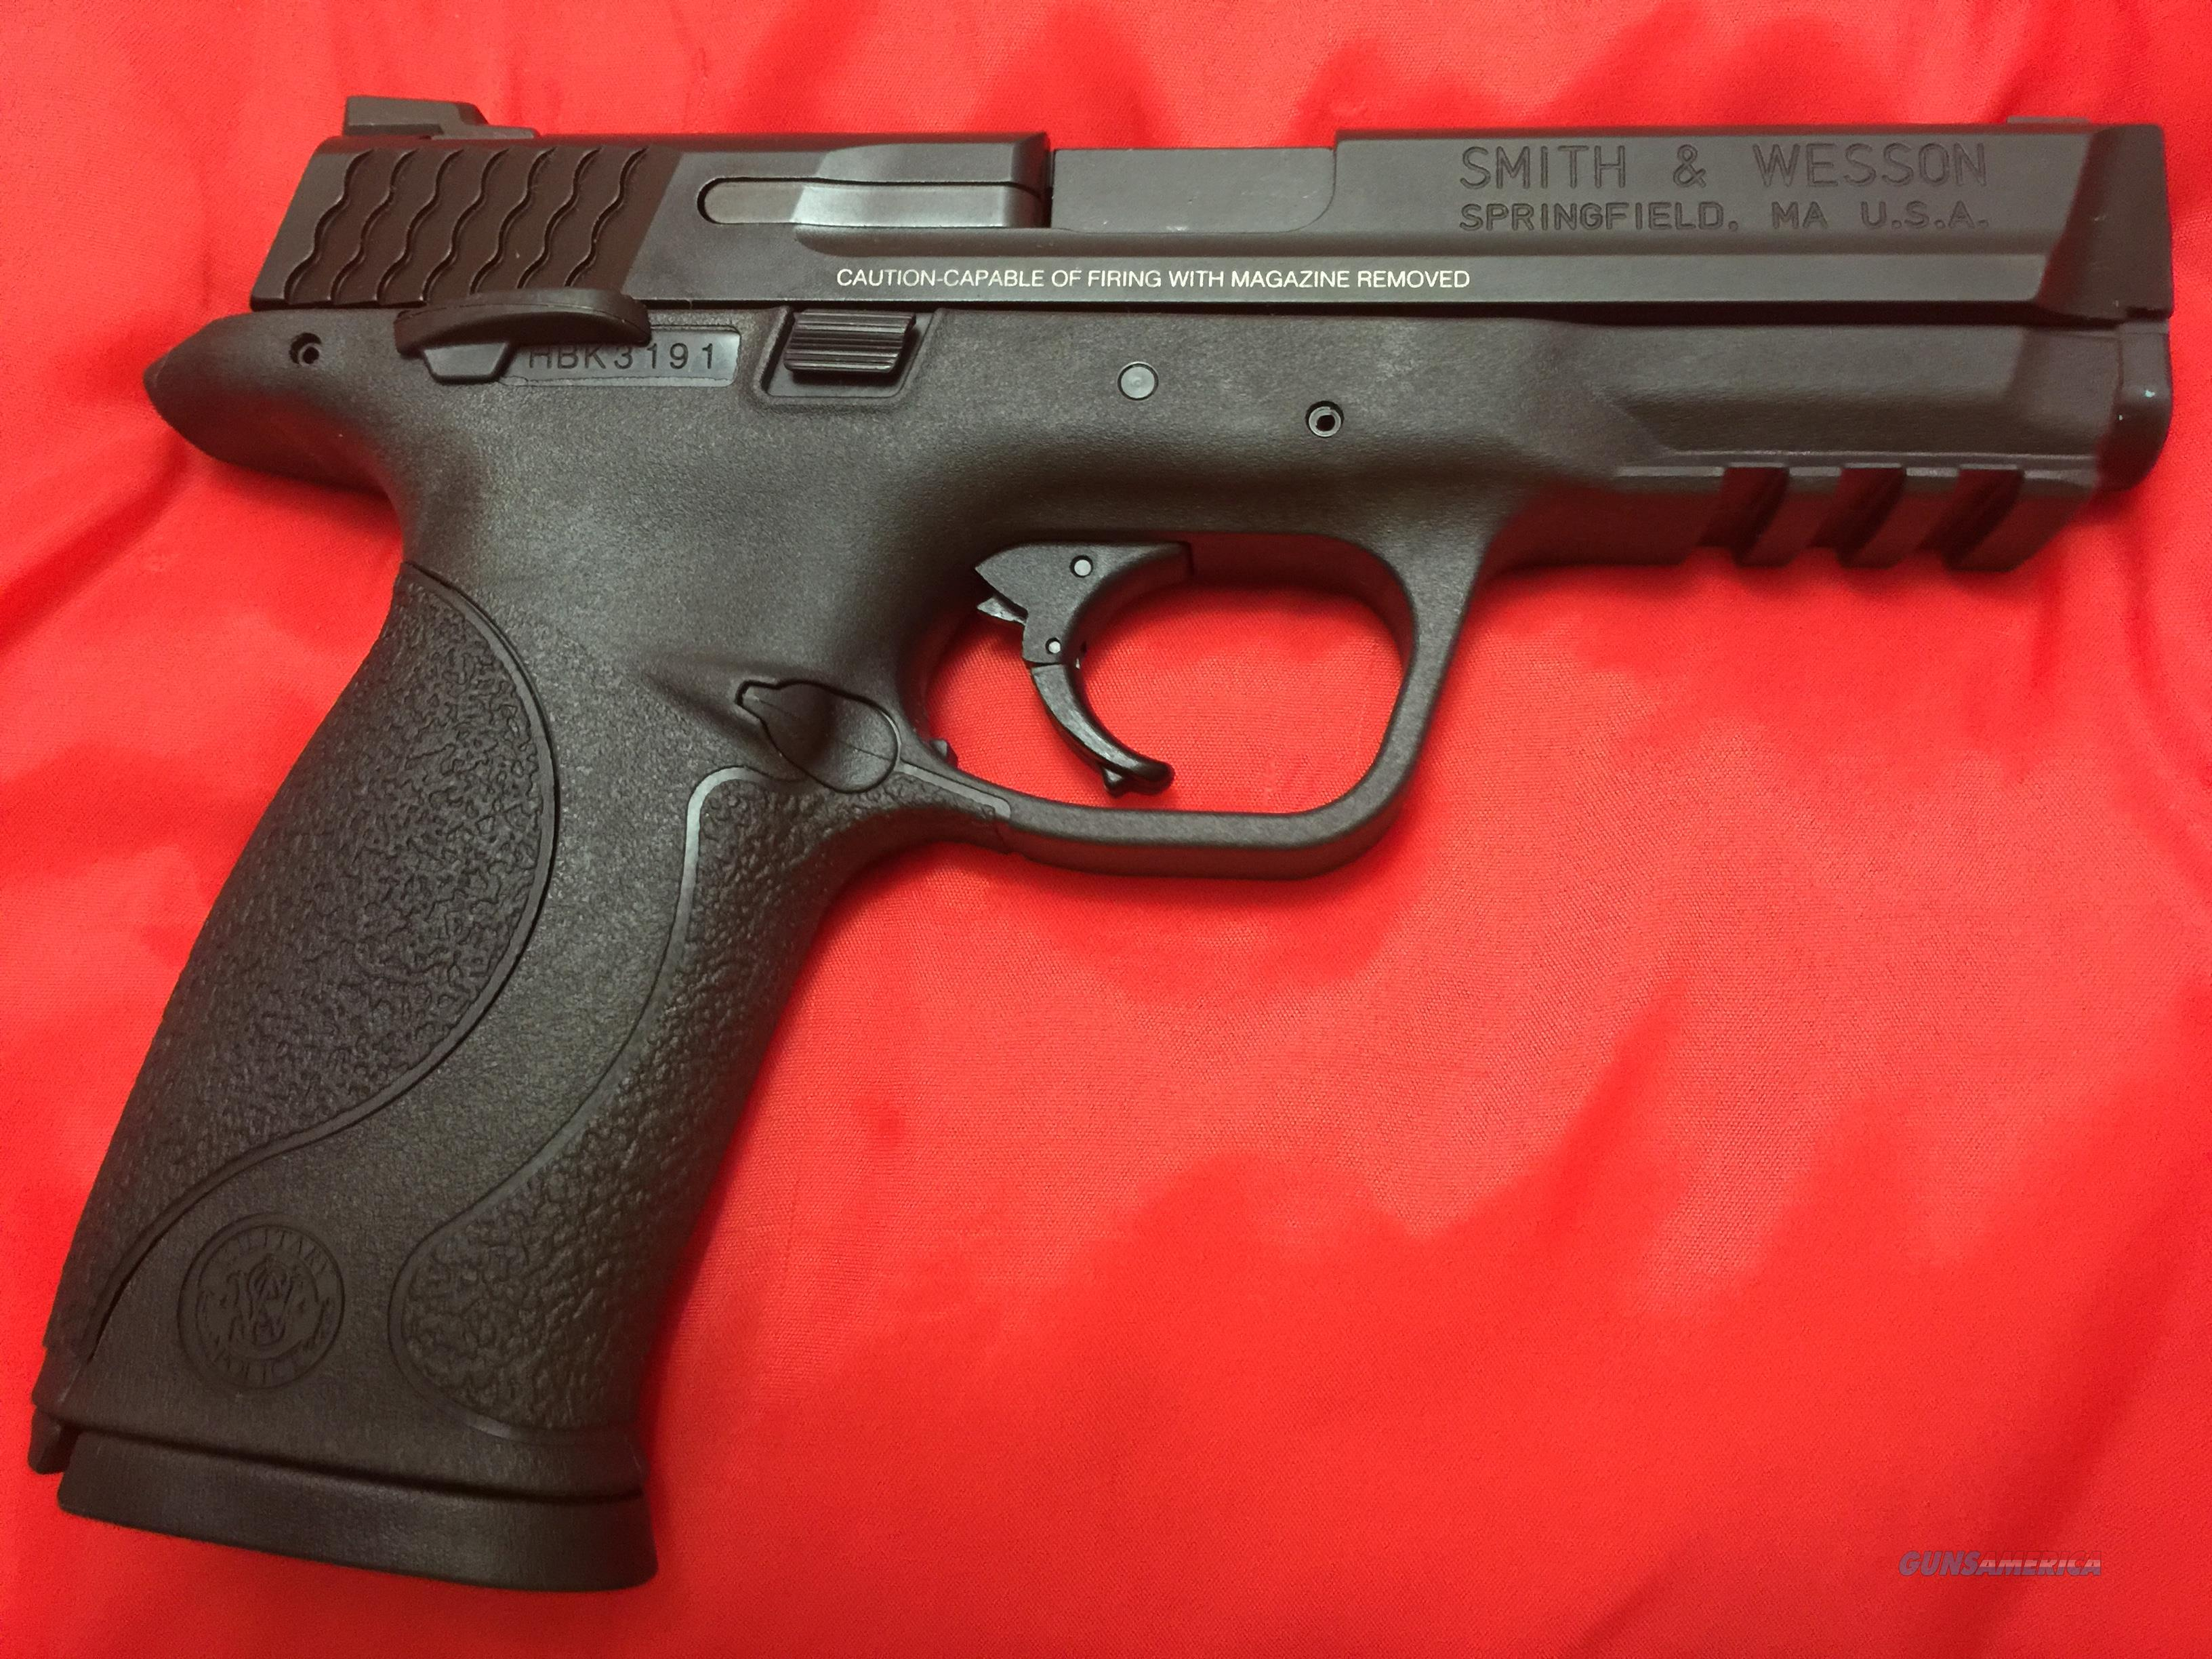 Smith and Wesson M&P 9mm with two 17 round magazines  Guns > Pistols > Smith & Wesson Pistols - Autos > Polymer Frame